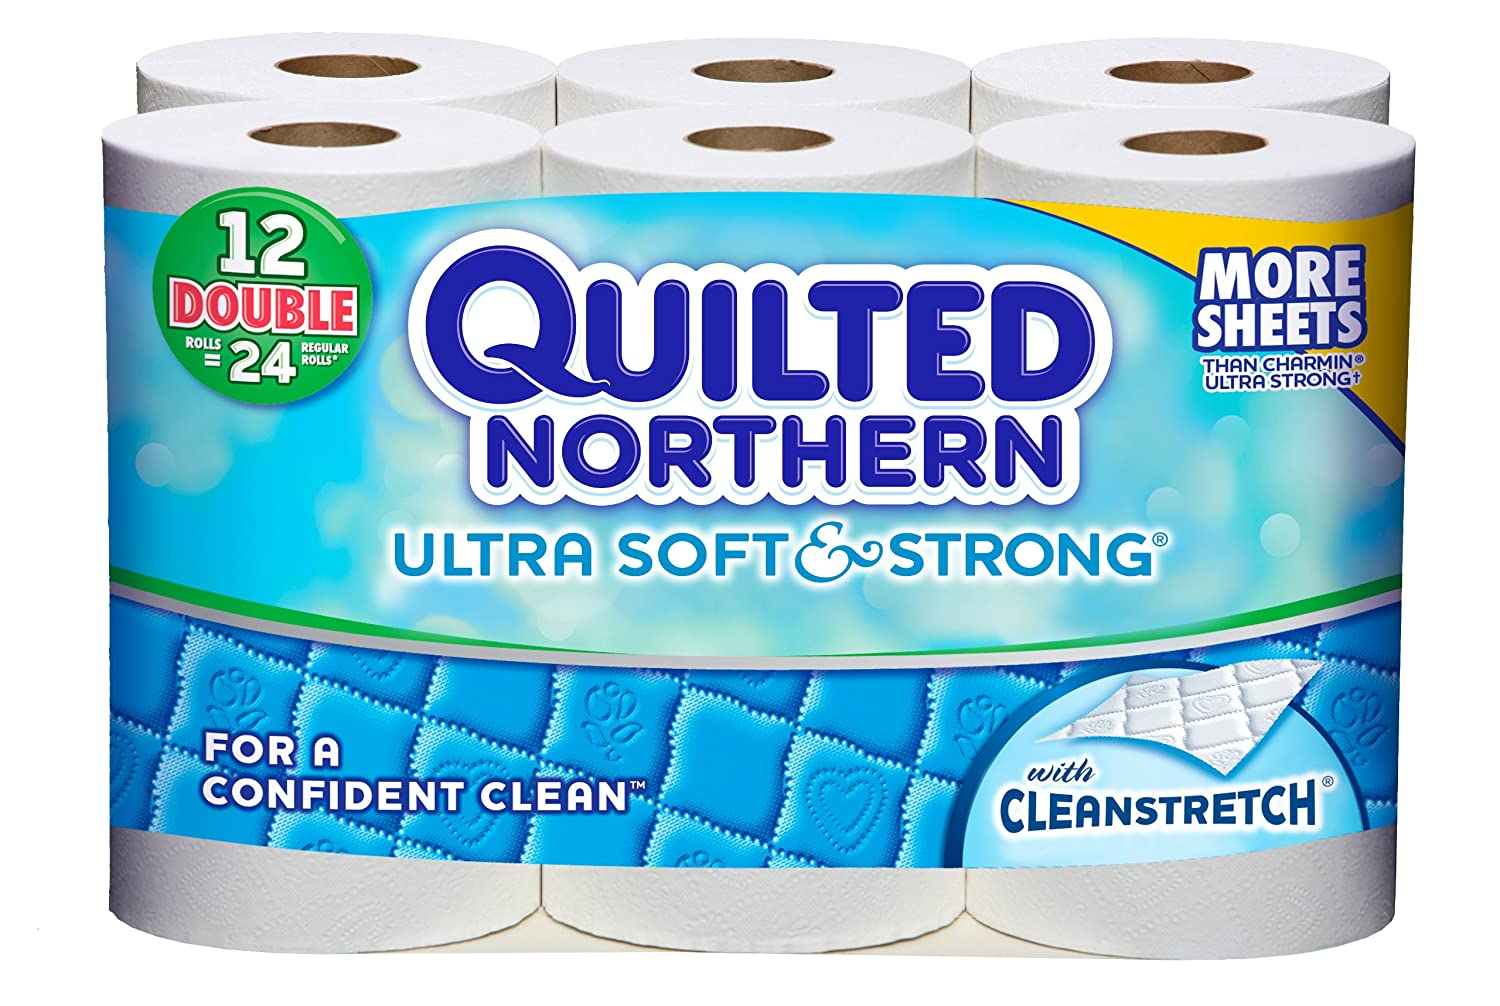 stock image winneconne paper photo wi quilt package feb northern toilet shutterstock quilted